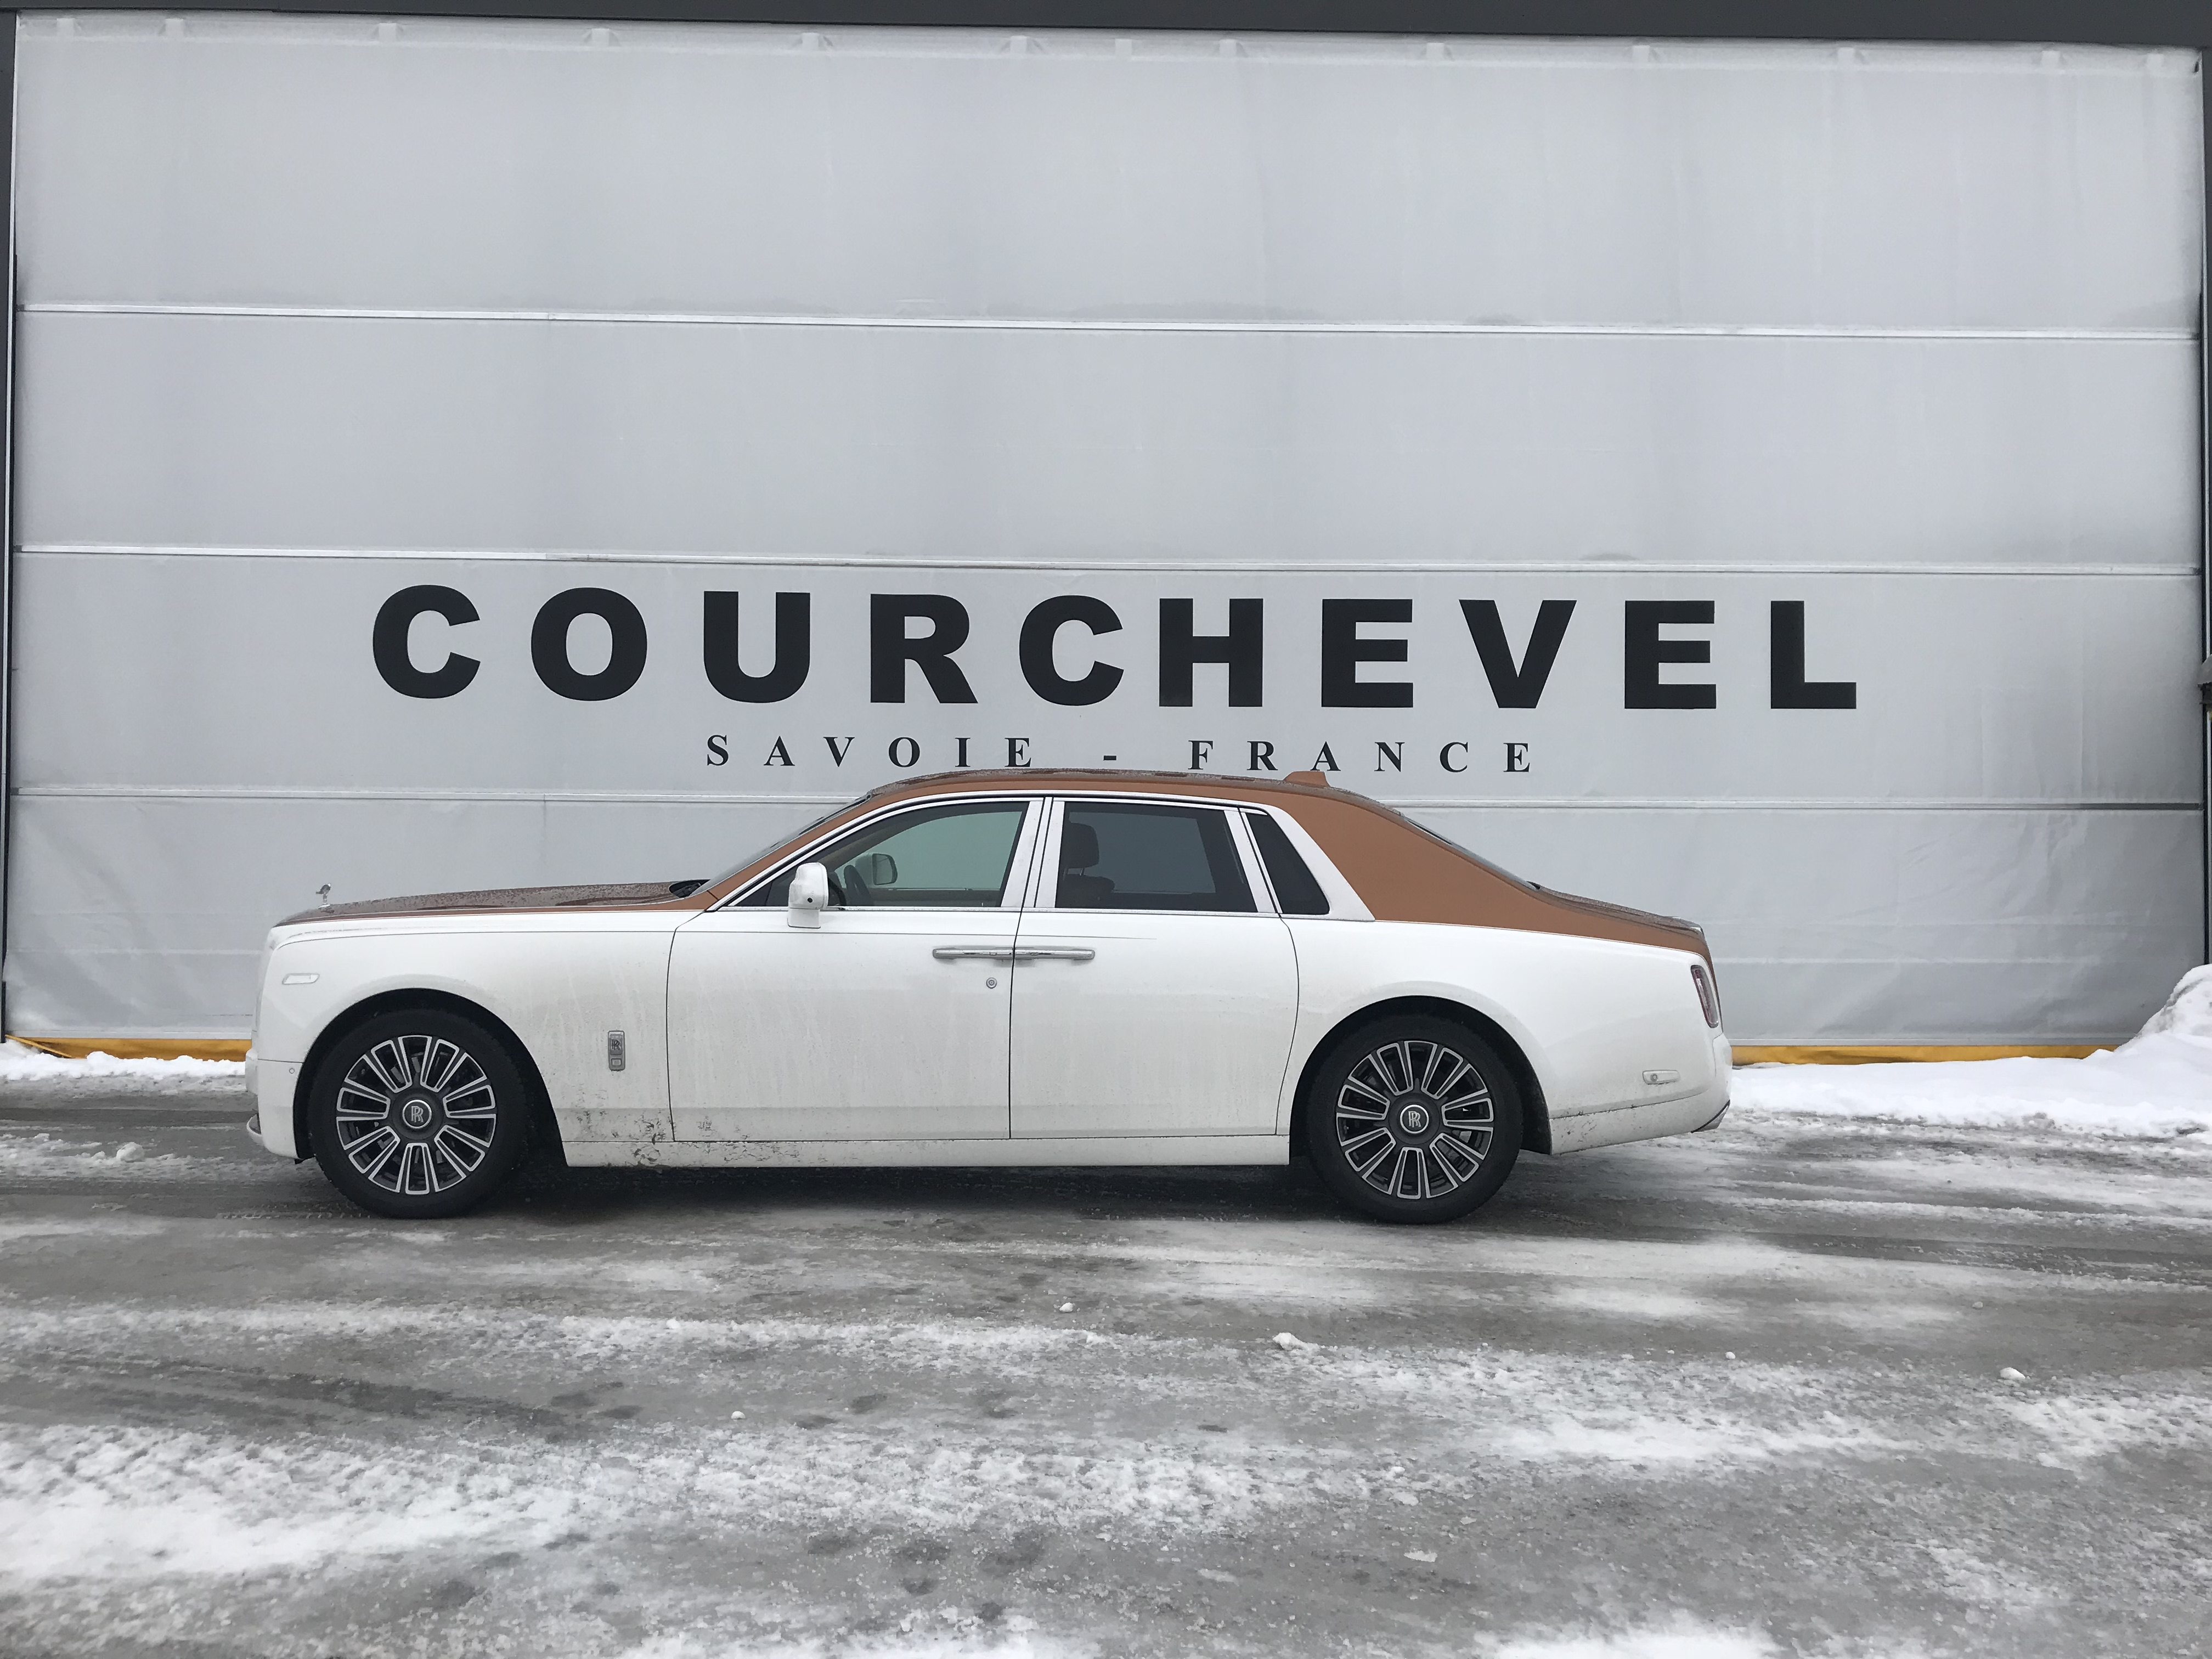 Automotive PR: ROLLS-ROYCE MOTOR CARS LONDON TAKES ON ULTIMATE LUXURY WINTER ROAD TRIP TO COURCHEVEL, FRANCE